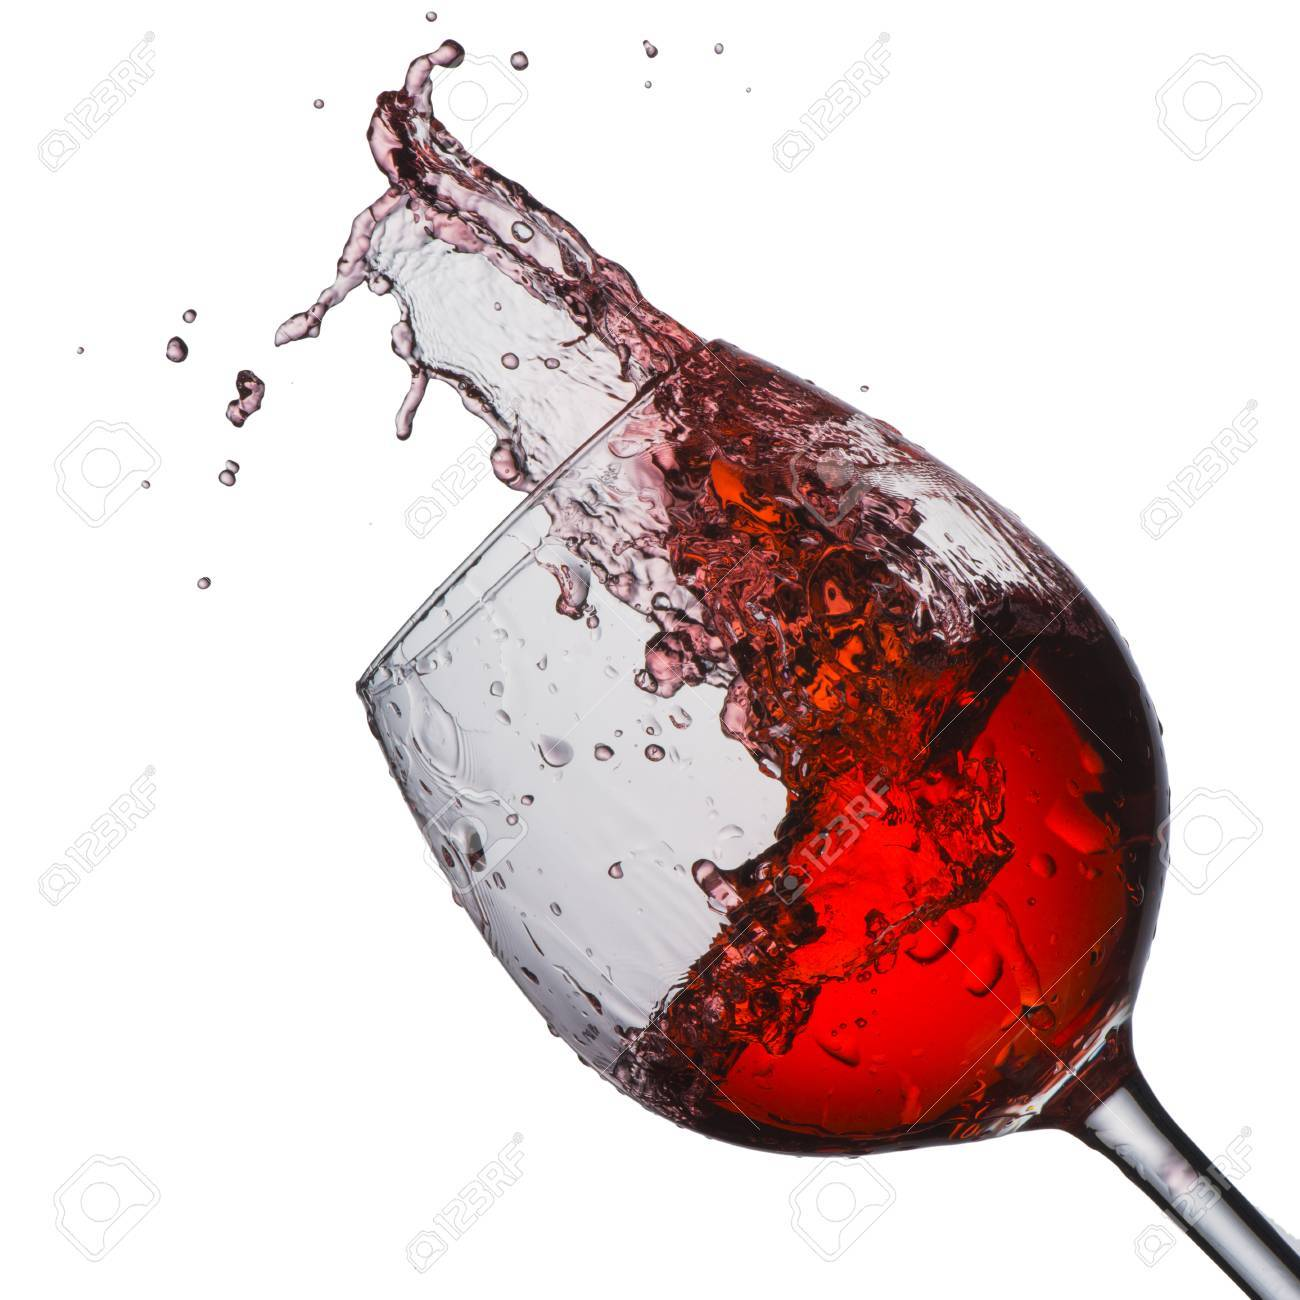 Photo De Verre De Vin Verre à Vin Rouge Avec Splash